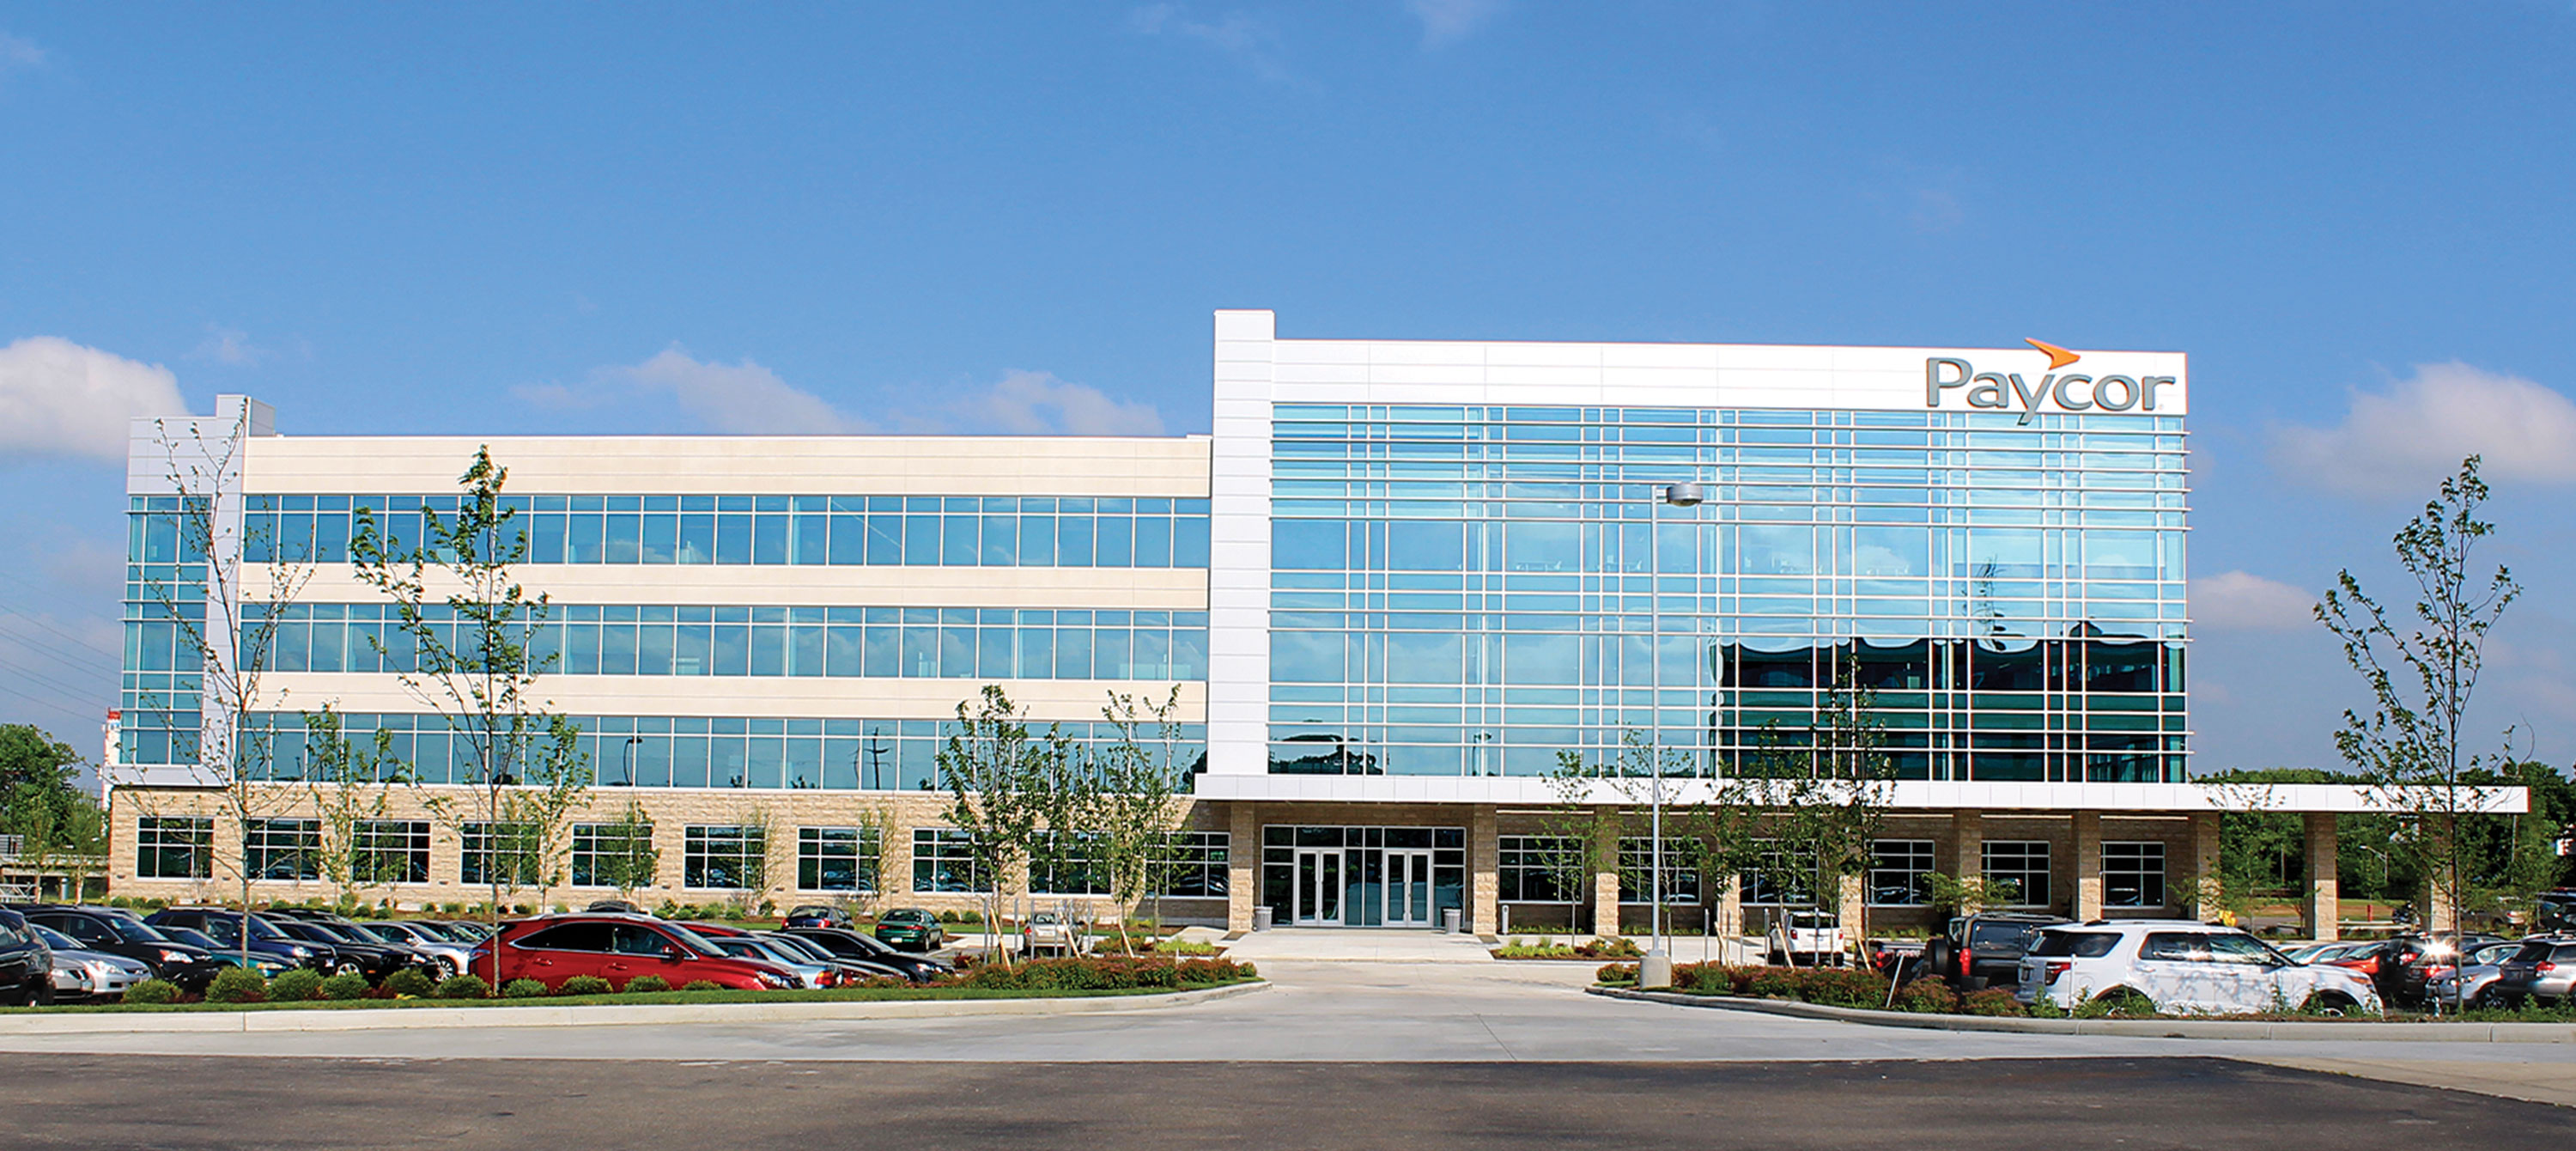 Exterior view of the main entrance at Paycor's corporate headquarters.